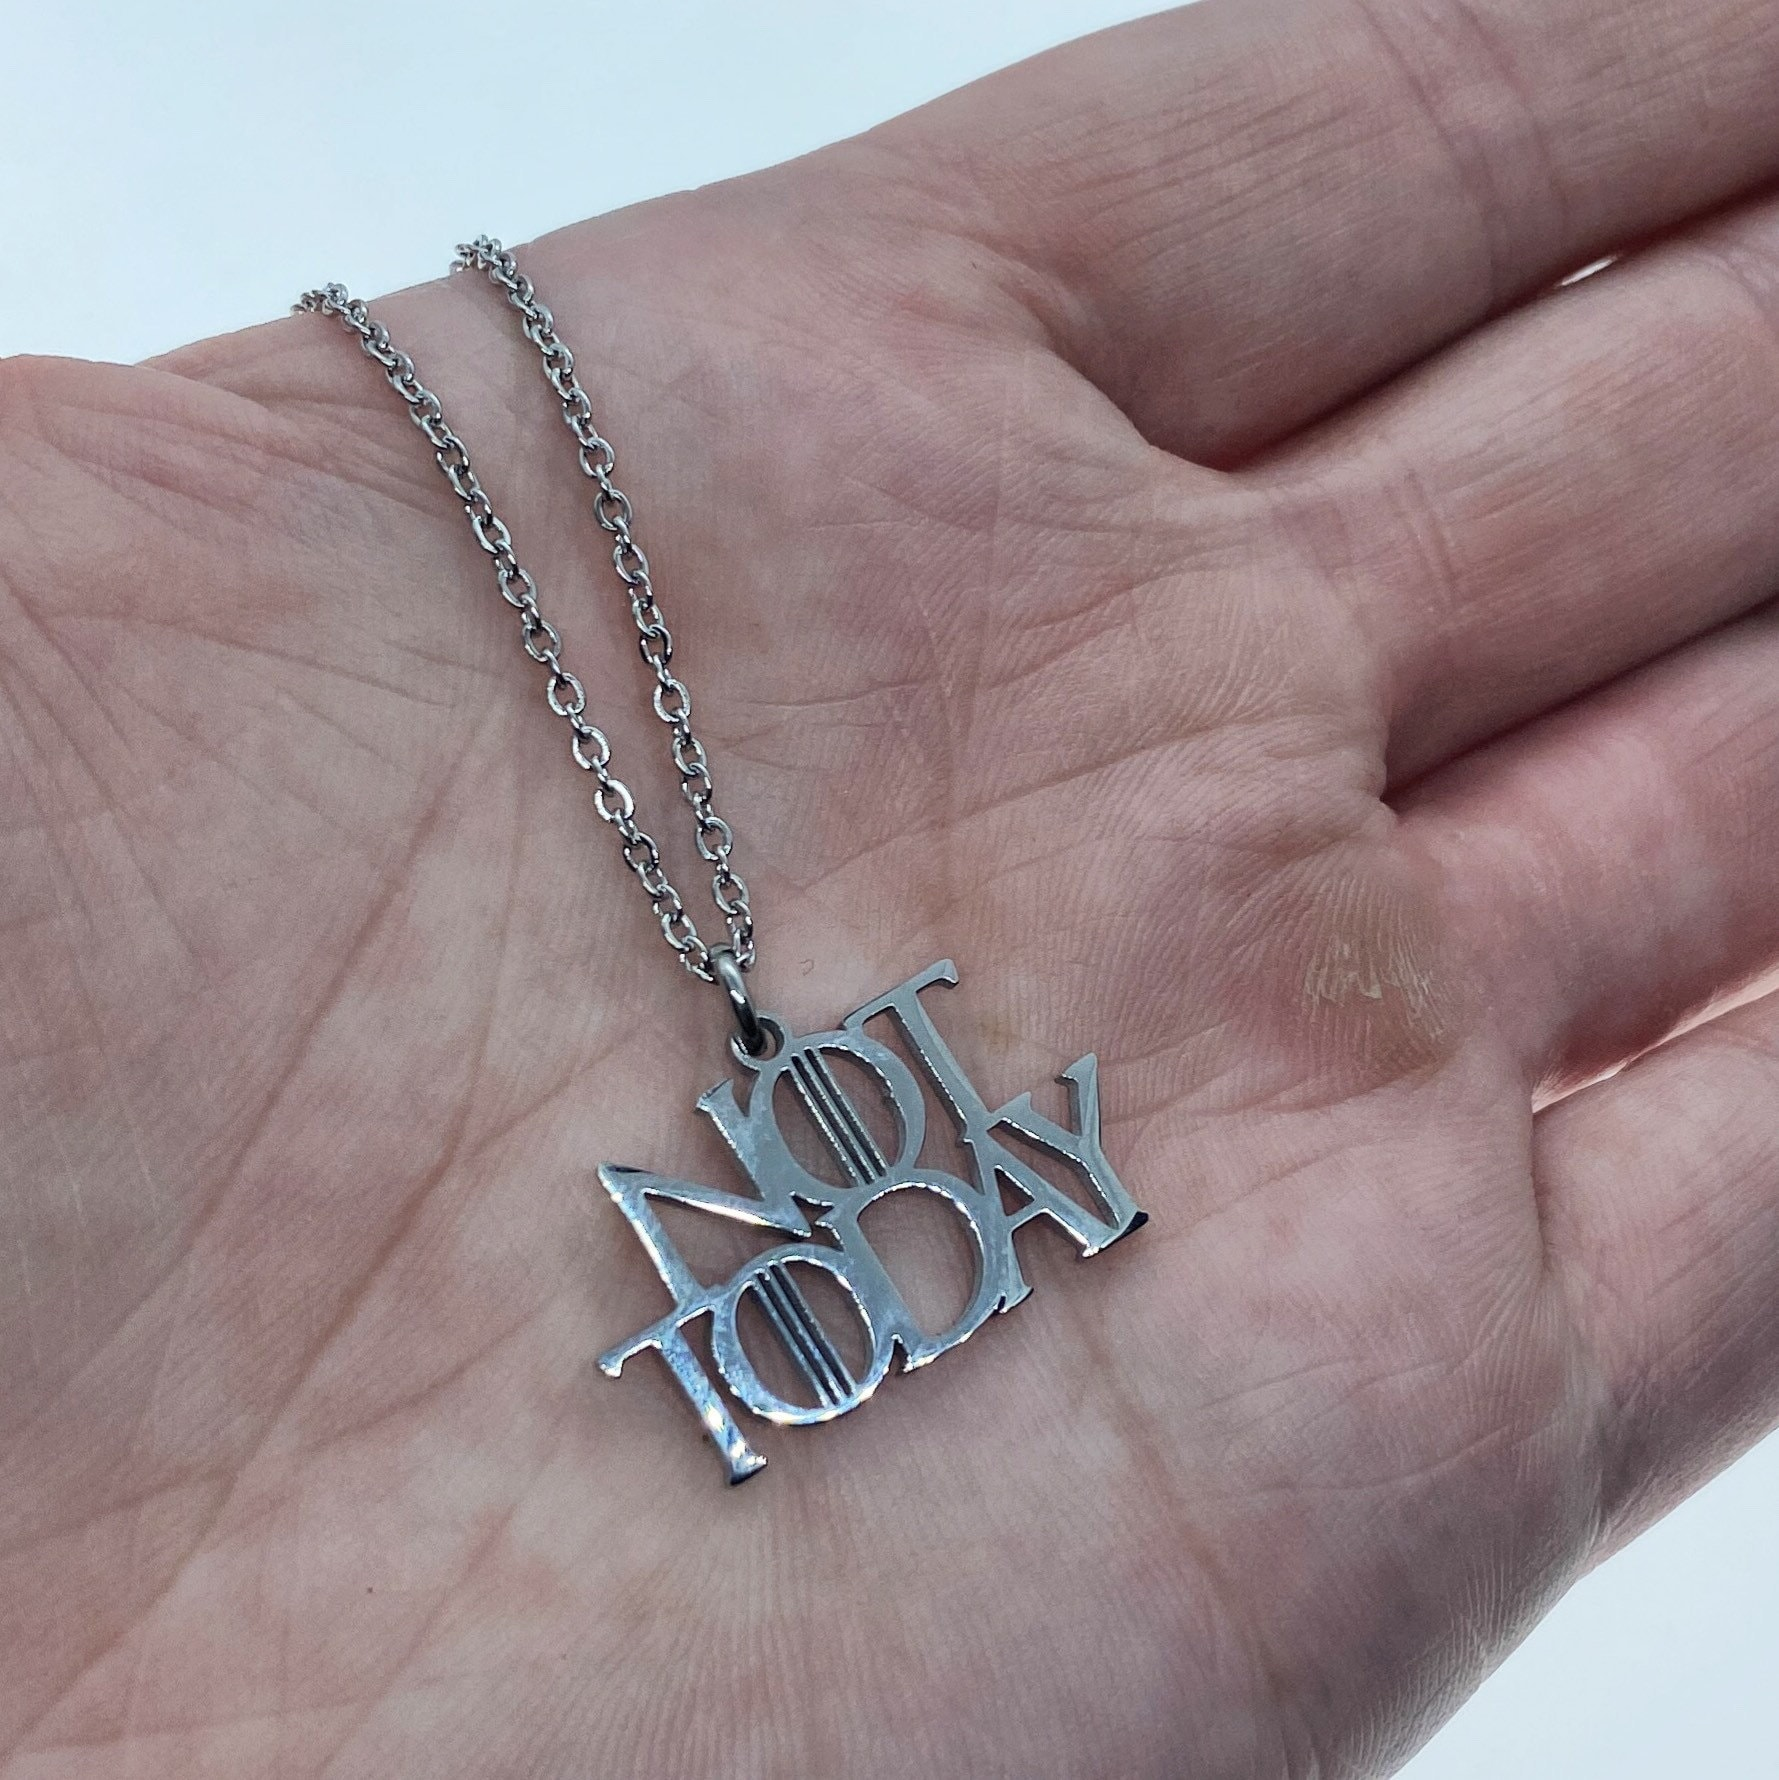 Arya Stark Necklace Not Today Necklace Game Of Thrones Necklace Game Of Thrones Gift Game Of Thrones Jewelry Game Of Thrones Fan Gift